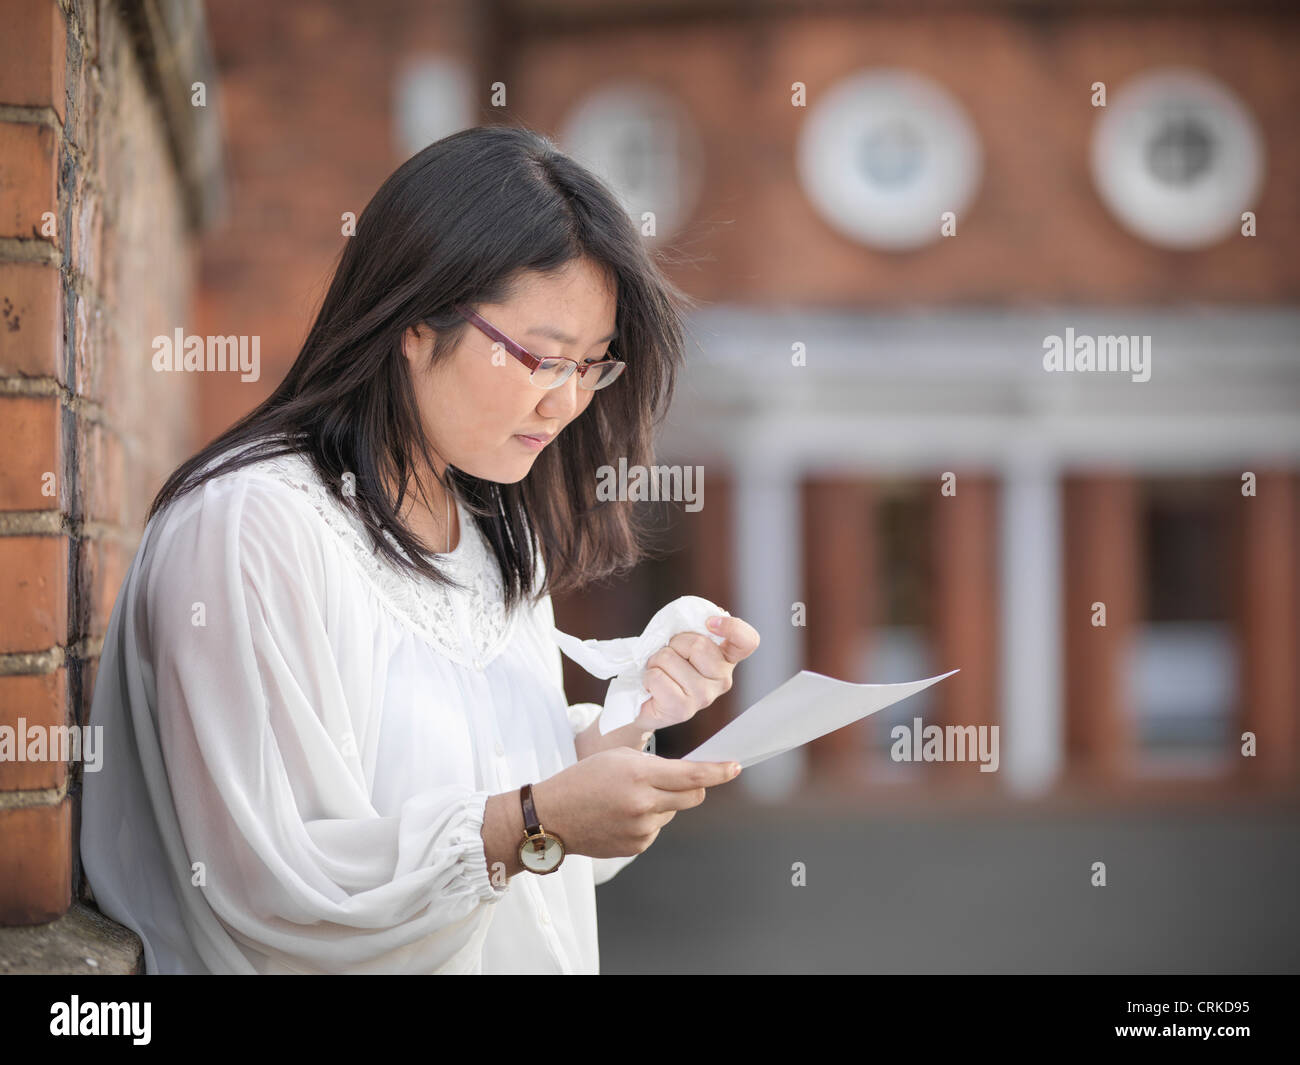 Crying student reading grades at school - Stock Image